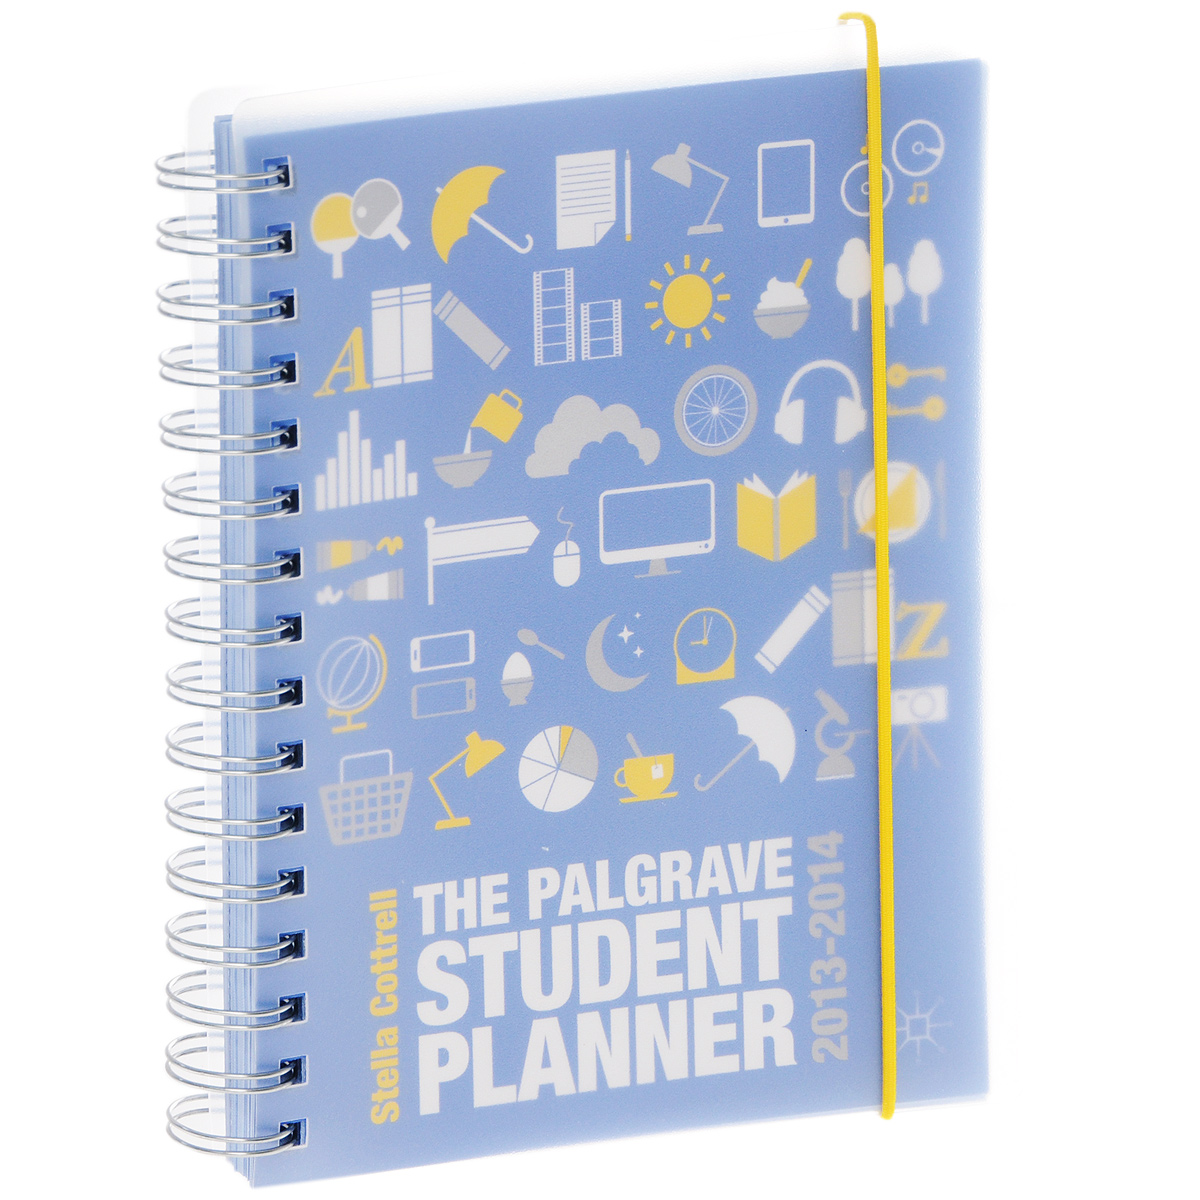 The Palgrave Student Planner 2013-2014 fine leather spiral binder travelers notebooks and journals agenda planner office stationery supplies weekly planner gift 2018